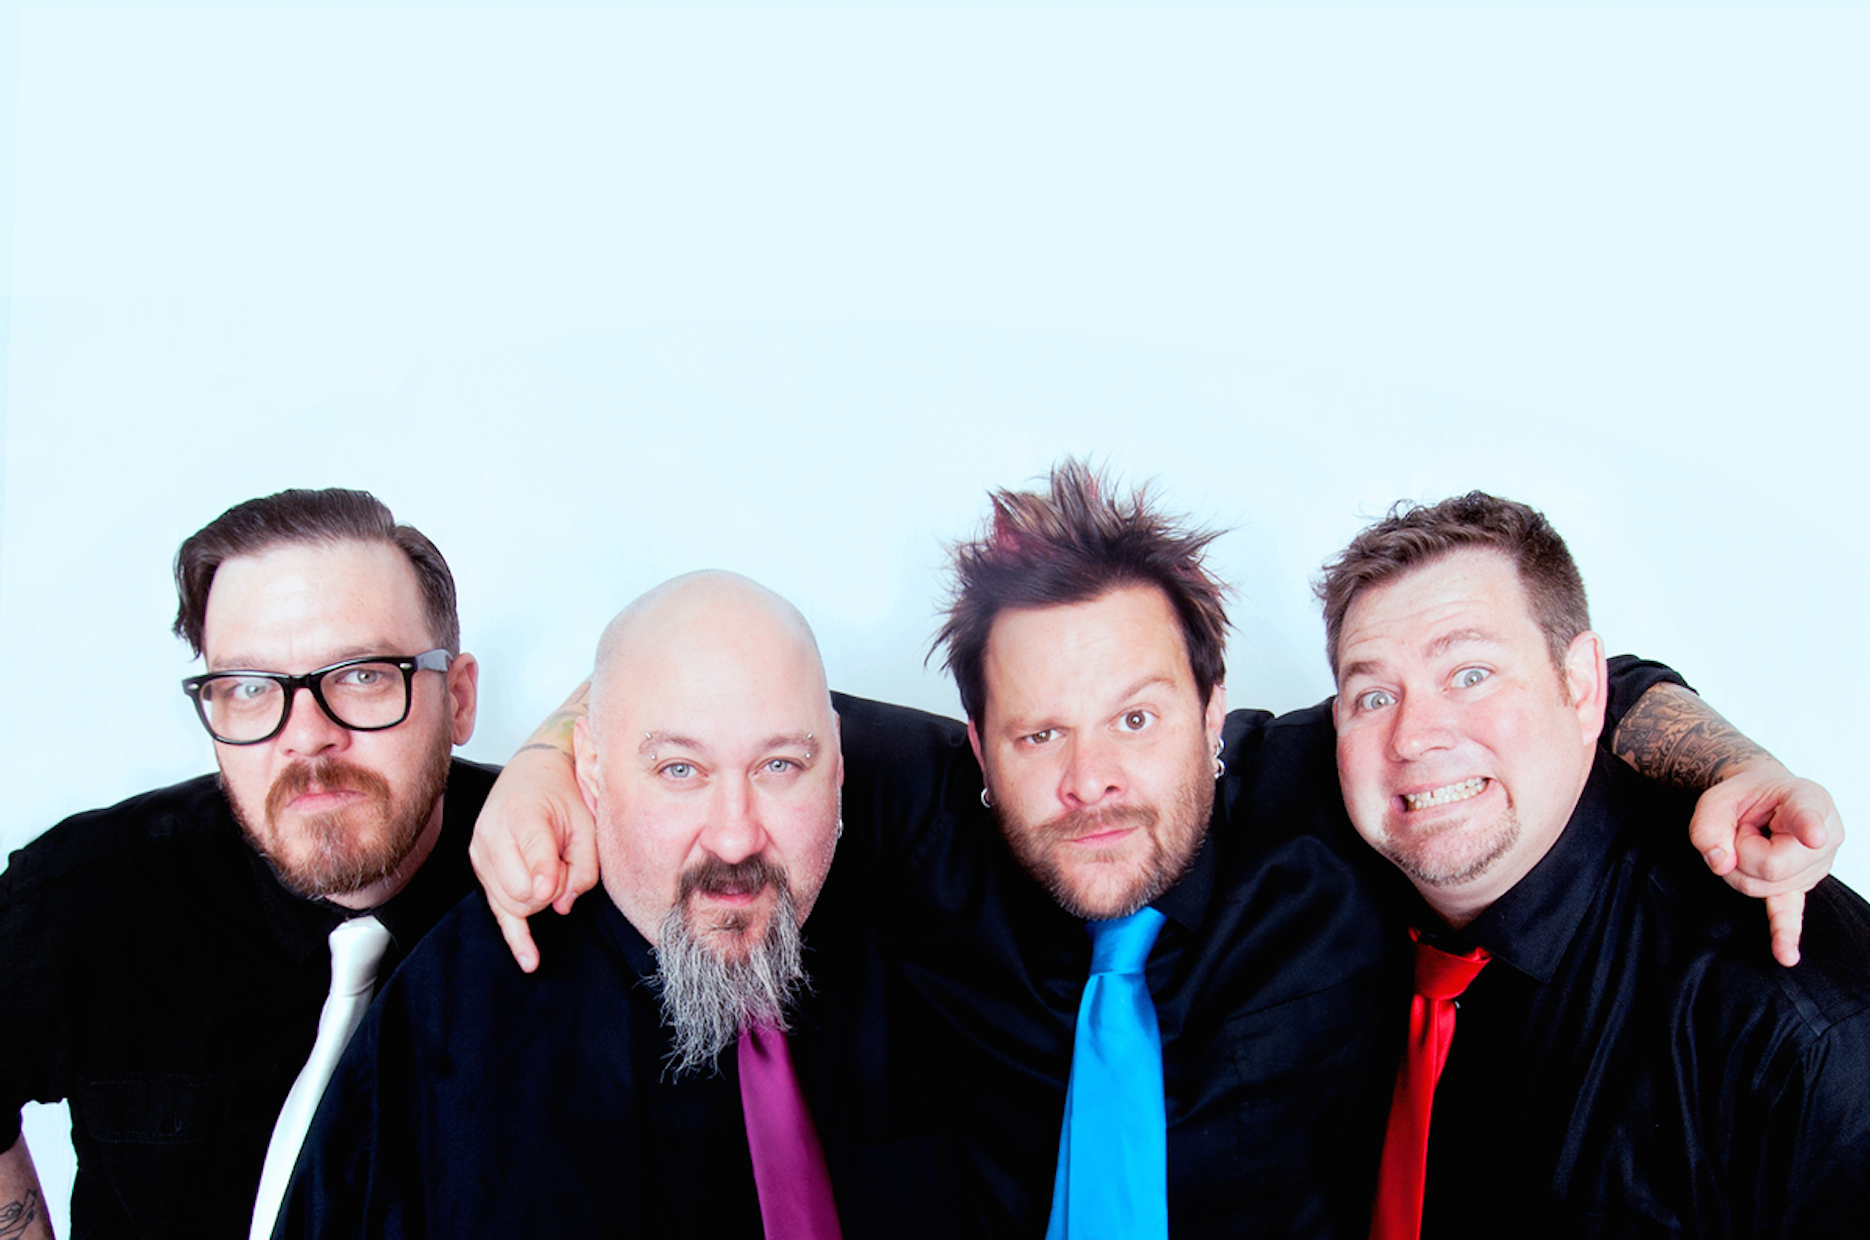 Bowling for Soup picture by Will Bolton